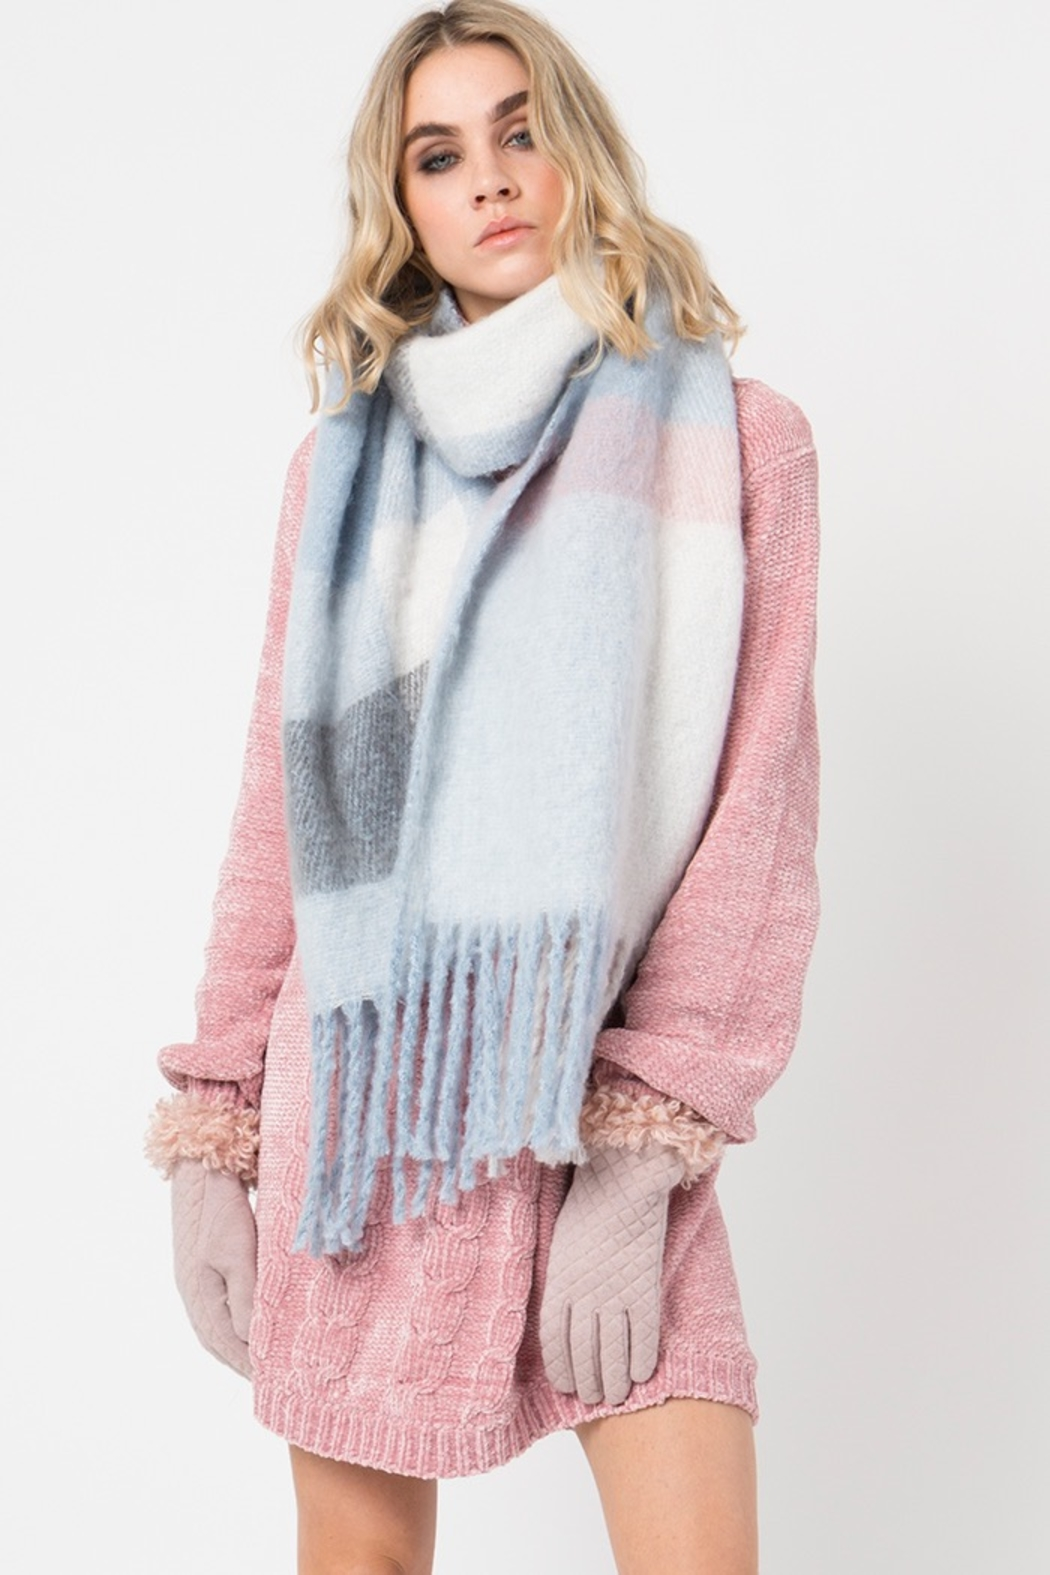 Pia Rossini CONNOLLY SCARF - Front Cropped Image